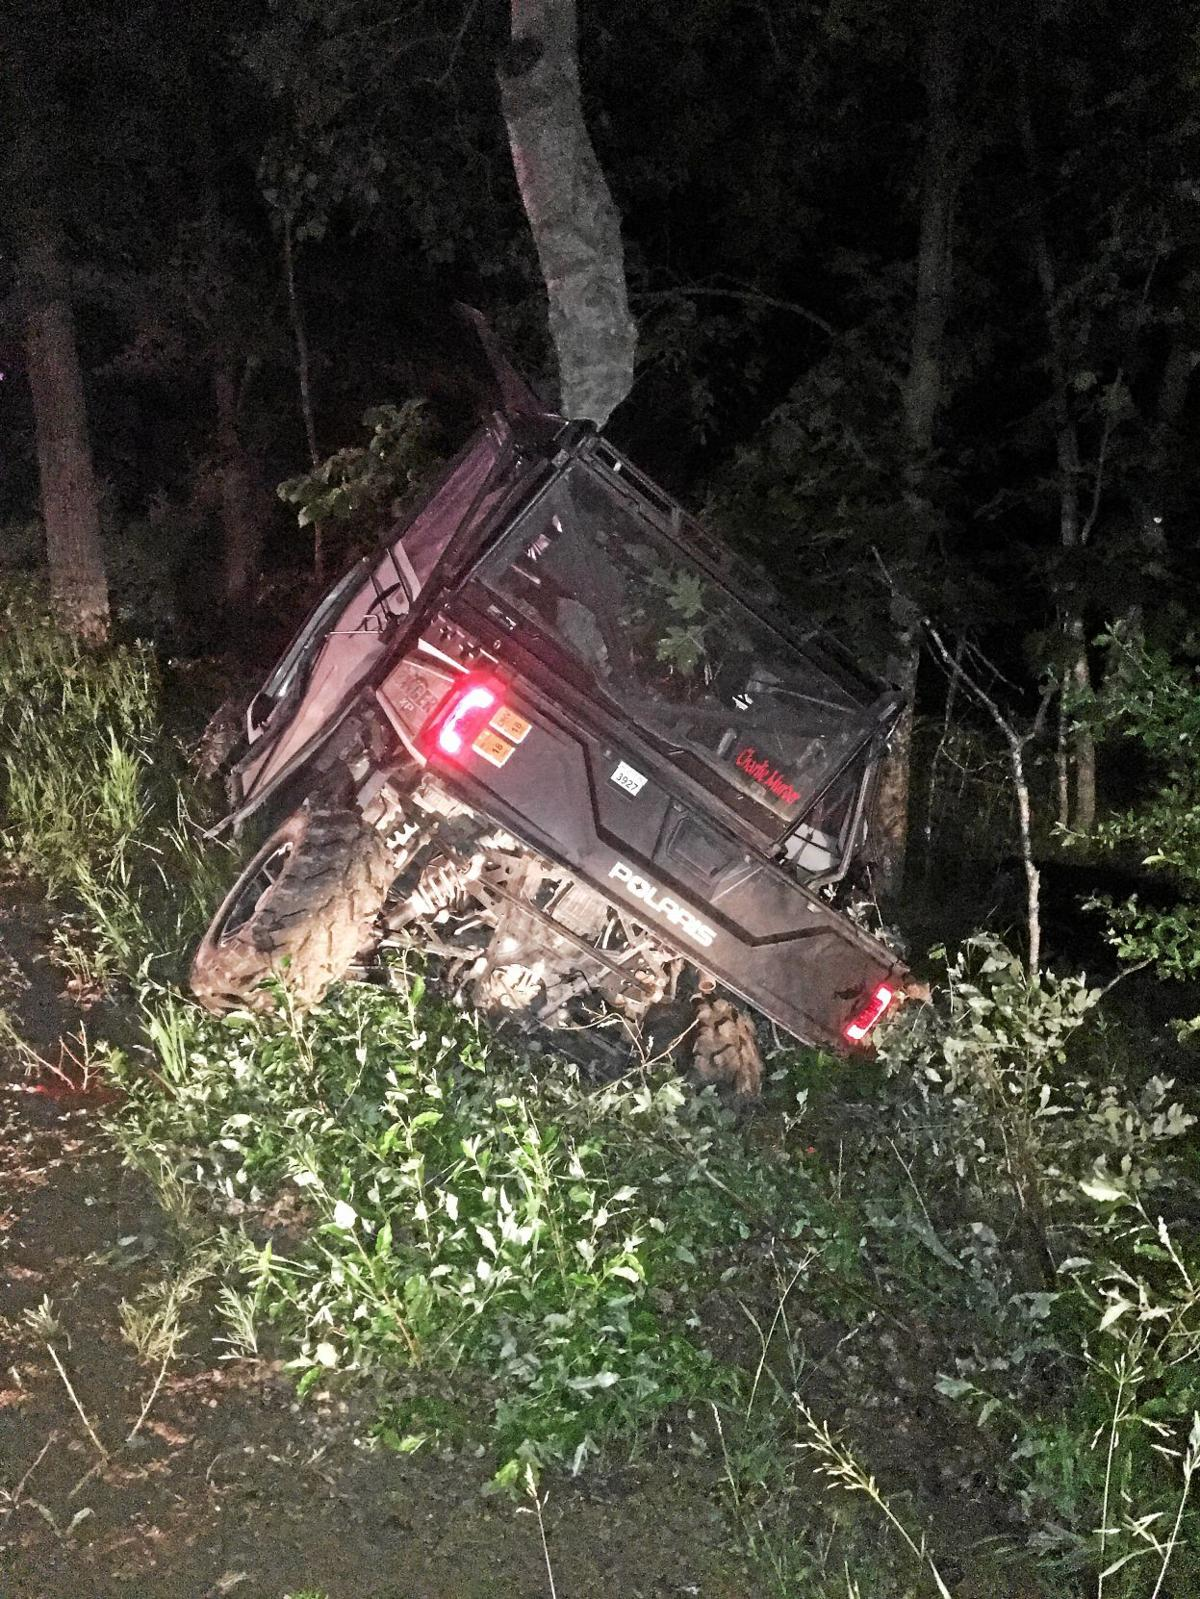 Driver arrested in Clare County ORV fatal crash